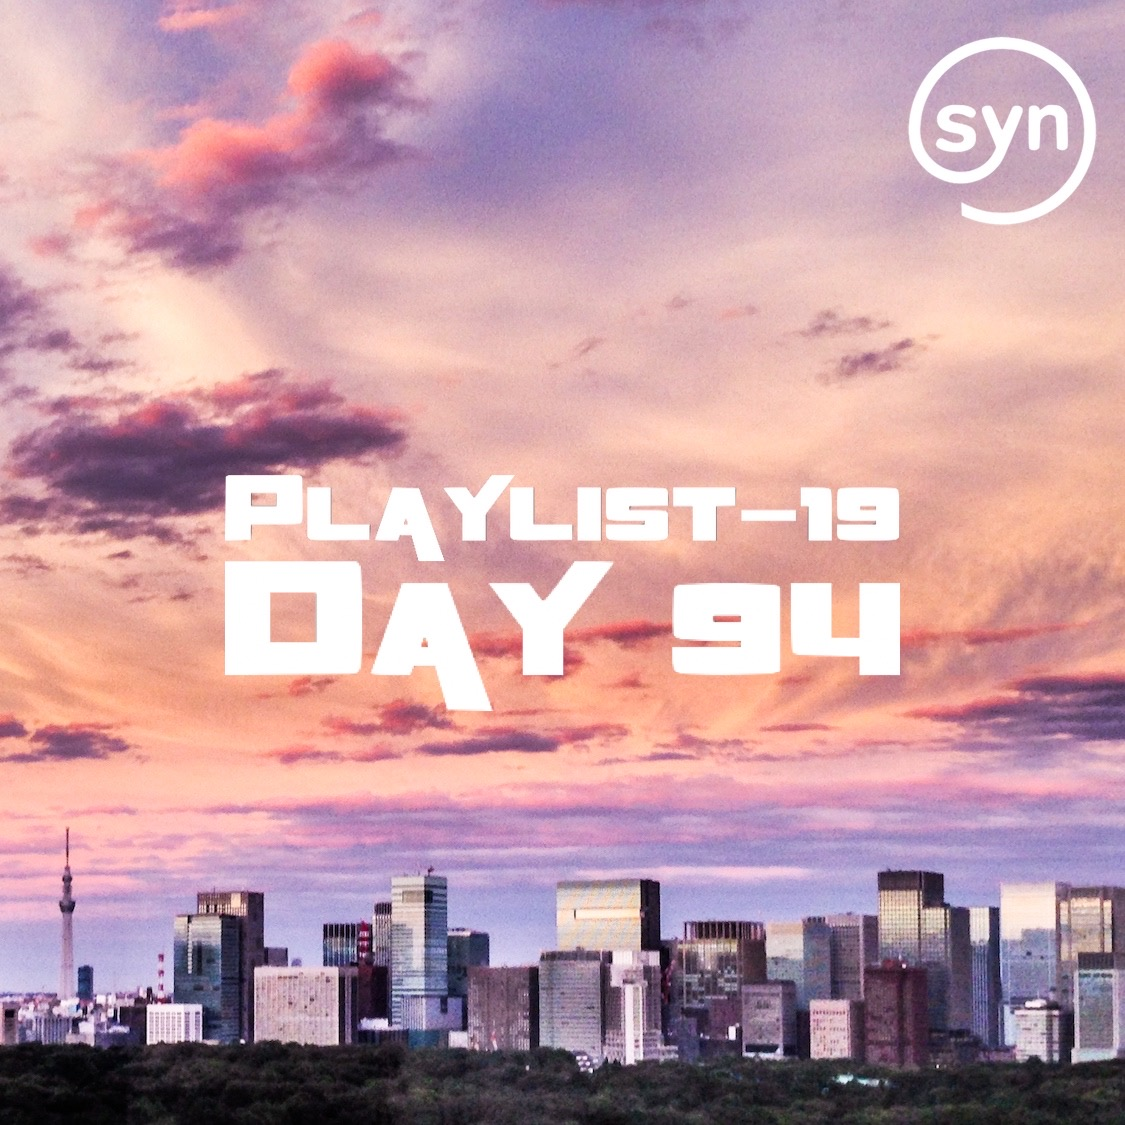 Here at Syn, we love nothing more than discovering music from other cultures. Today - on PLAYLIST-19 - we'd like to share with you some contemporary #music from #Japan. From the heart of Tokyo to wherever you are, we bring you the music of modern Japan...  https://t.co/2r0NfK24iv https://t.co/kdocc2ZHAR